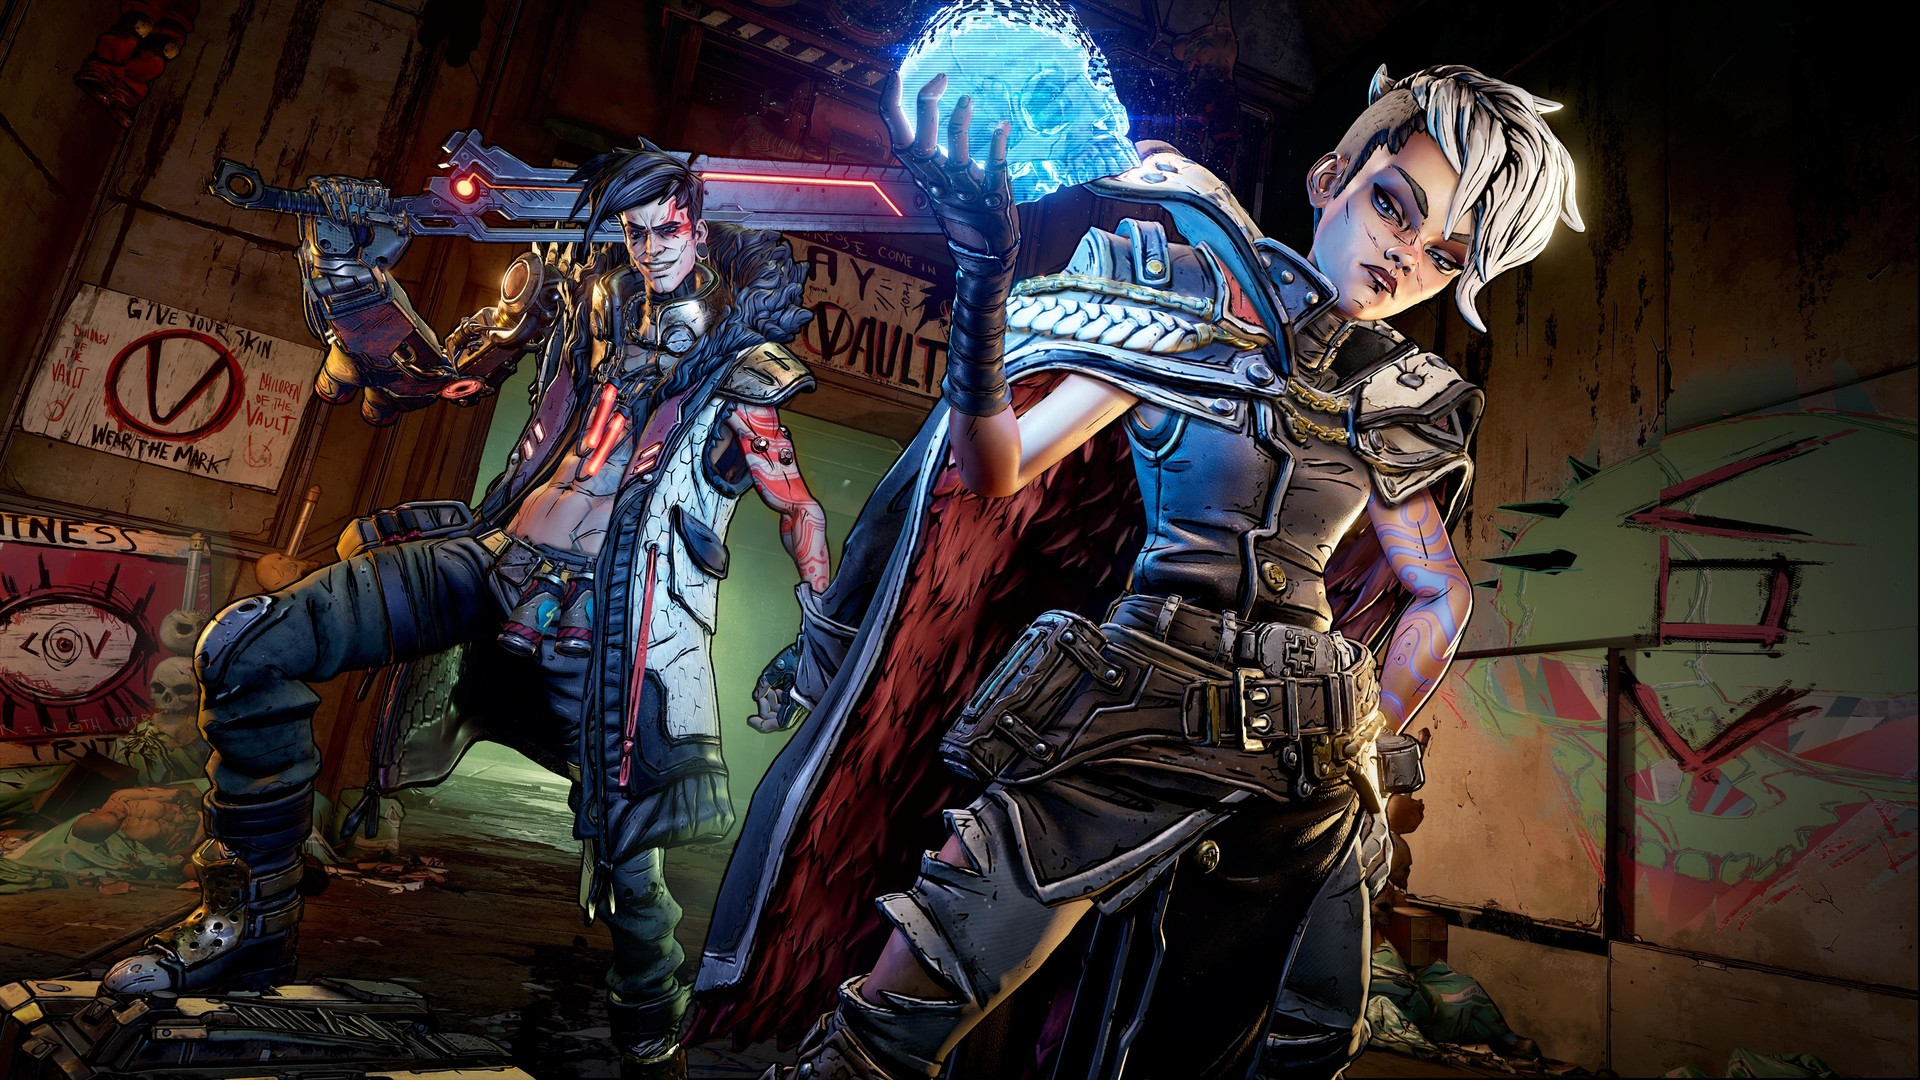 2K says that Borderlands 3 isn't coming to Switch, PEGI rating was an error screenshot